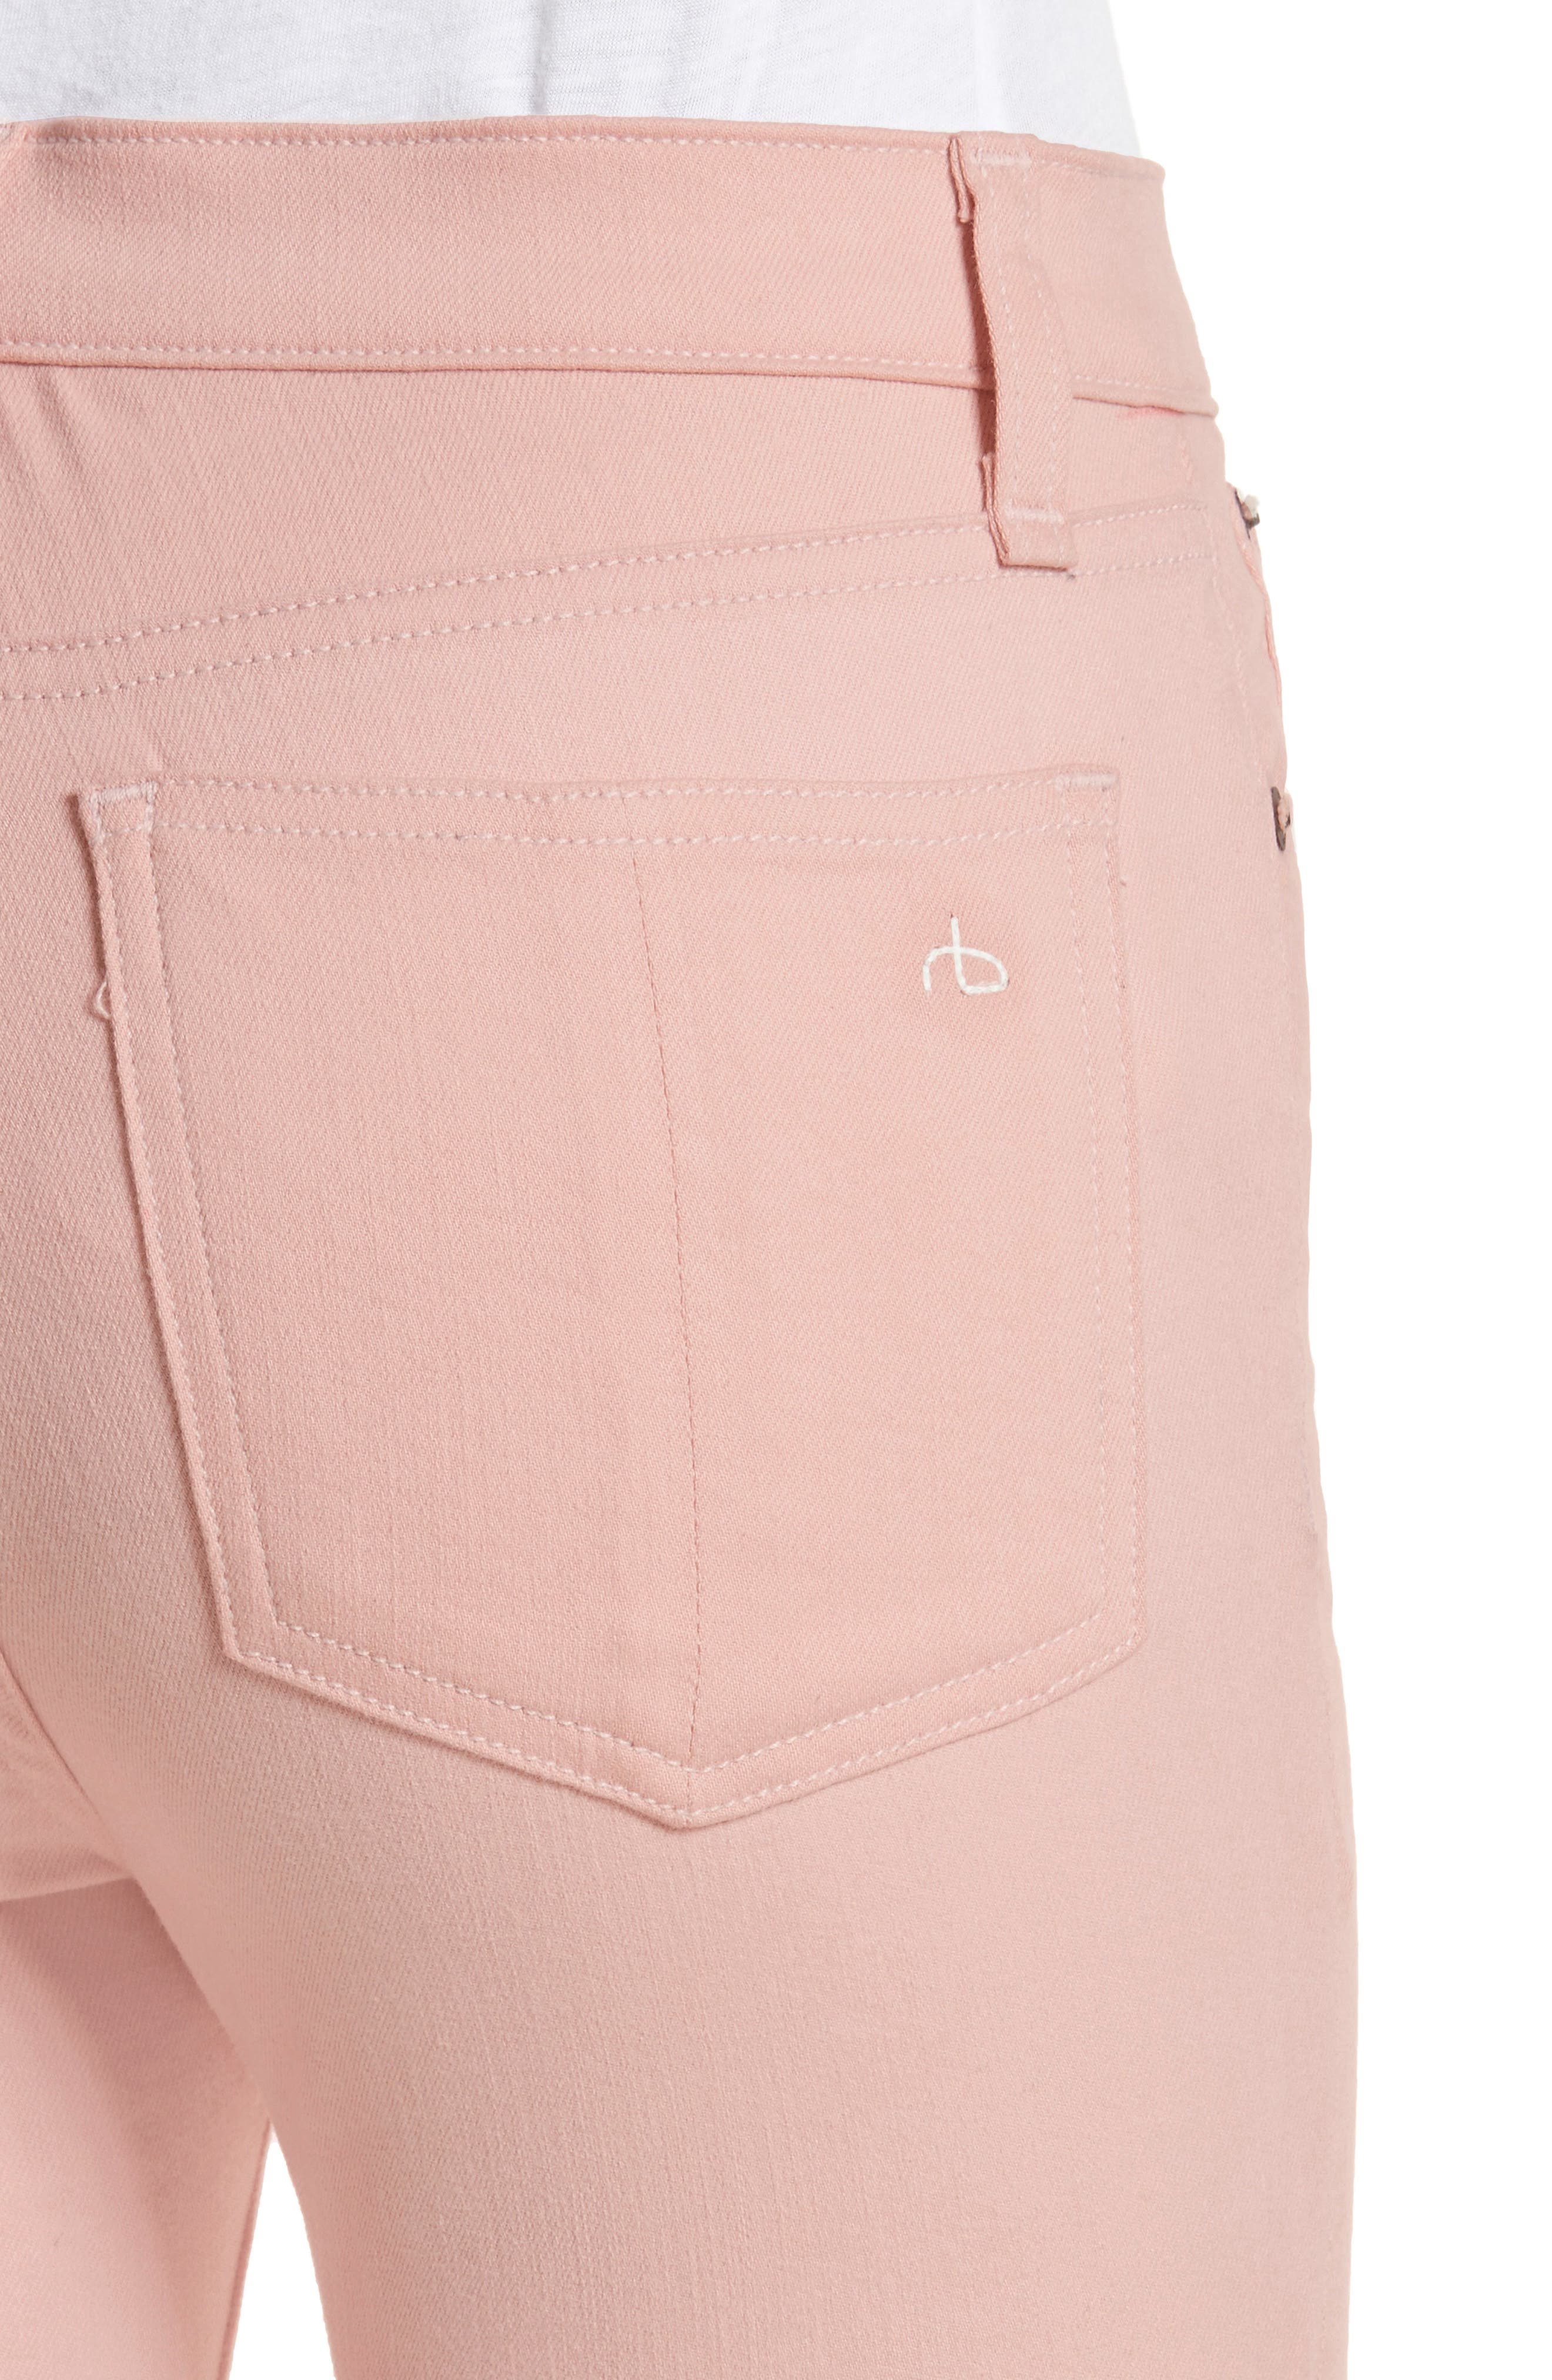 High Waist Skinny Jeans,                             Alternate thumbnail 4, color,